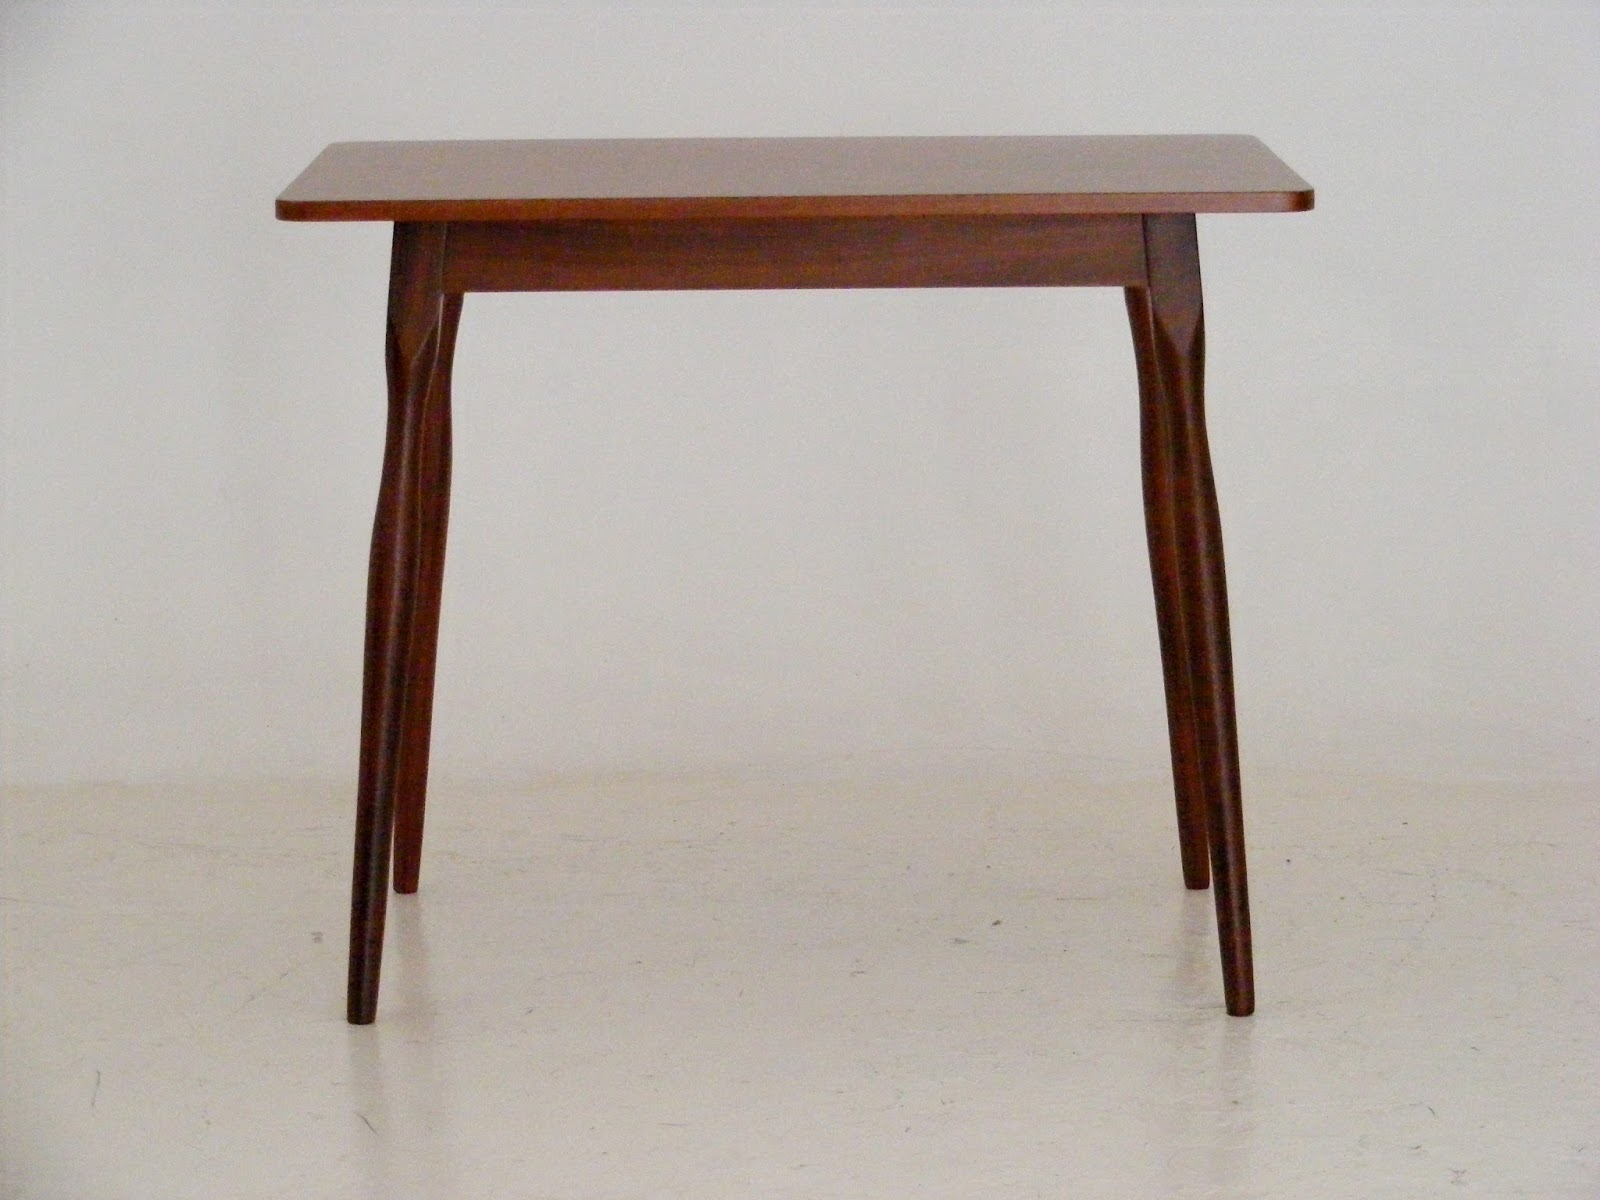 A Small Two Seater Mid Century Dining Table Or Desk In Sapele And Mahogany Wood 92cm X 61cm Height 76cm R1950 Please Call Us On 021 448 2755 Email